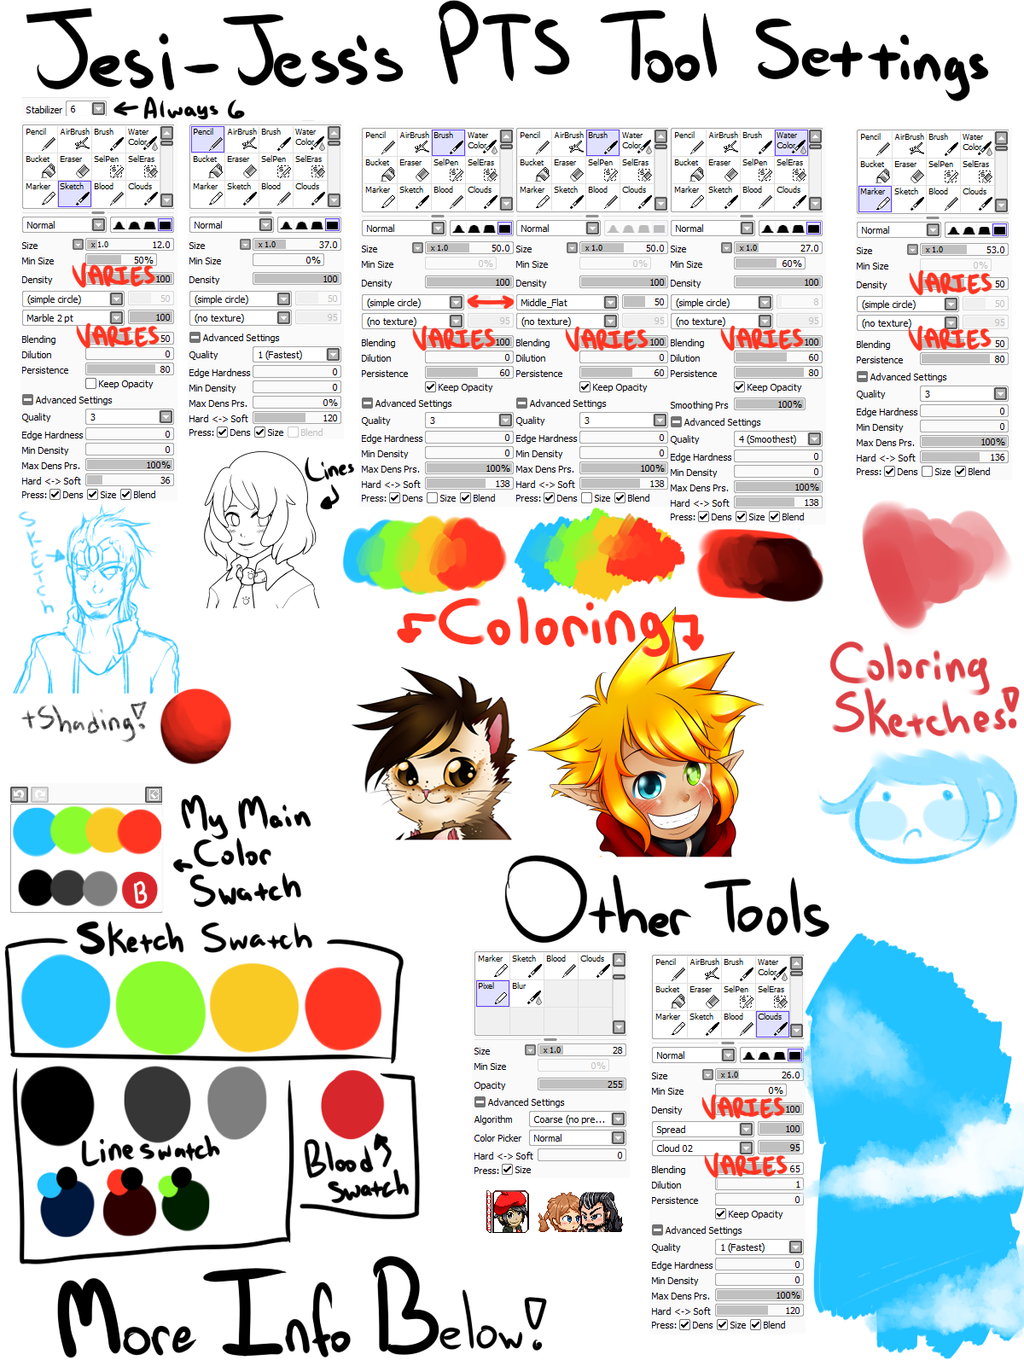 Paint Tool Sai Tools and Swatches v2 by Jesi-Jess on DeviantArt